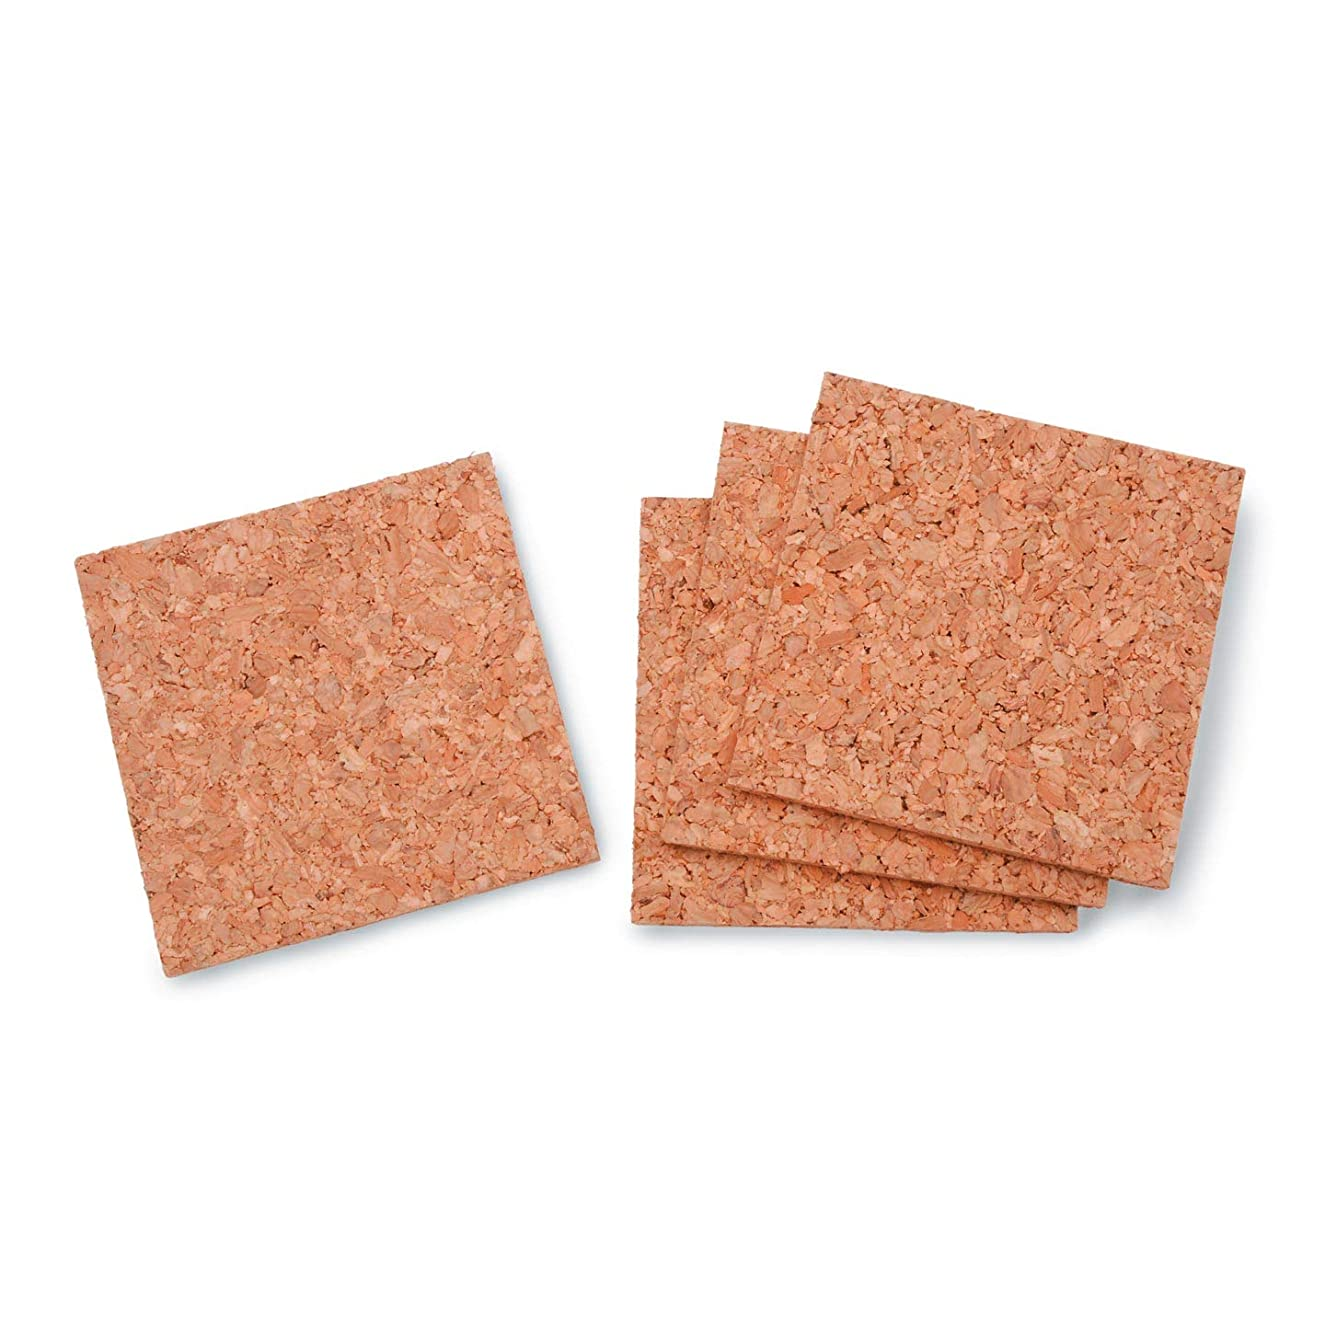 Bulk Buy: Darice DIY Crafts Cork Tile Square 5mm Thick 4 x 4 inches 4 pieces (6-Pack) 1098-81